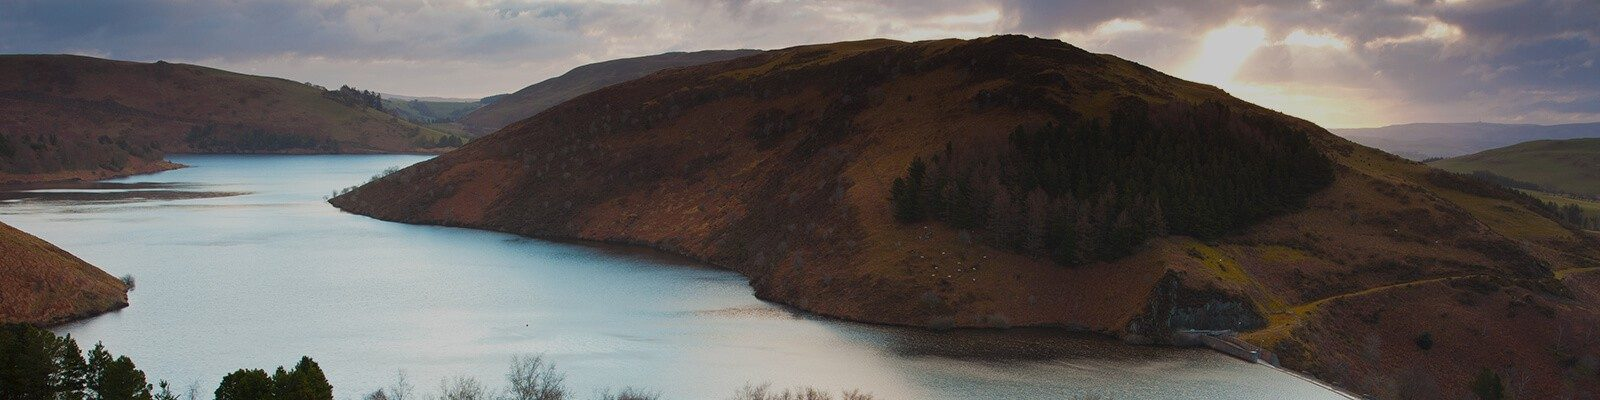 banner image of water and hills.